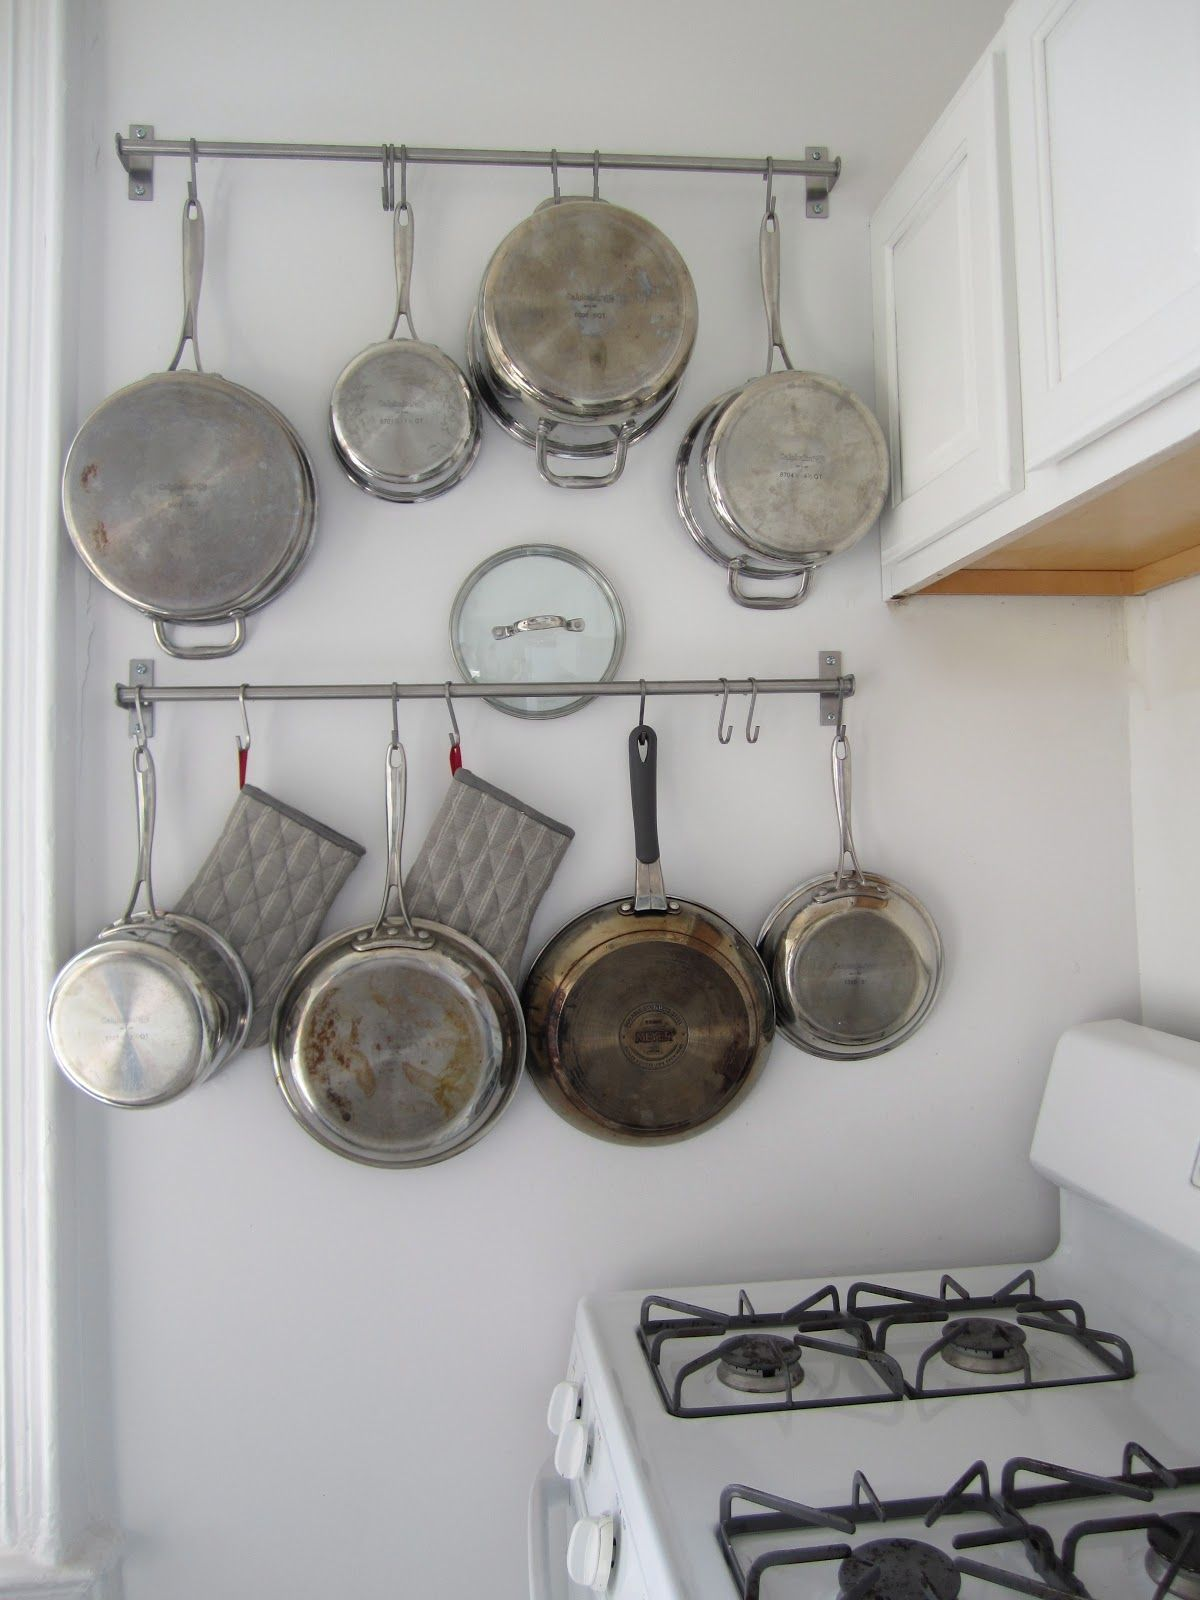 Ikea Pot Hanger Kitchen Ideas For Hanging Pots And Pans 4 Diy